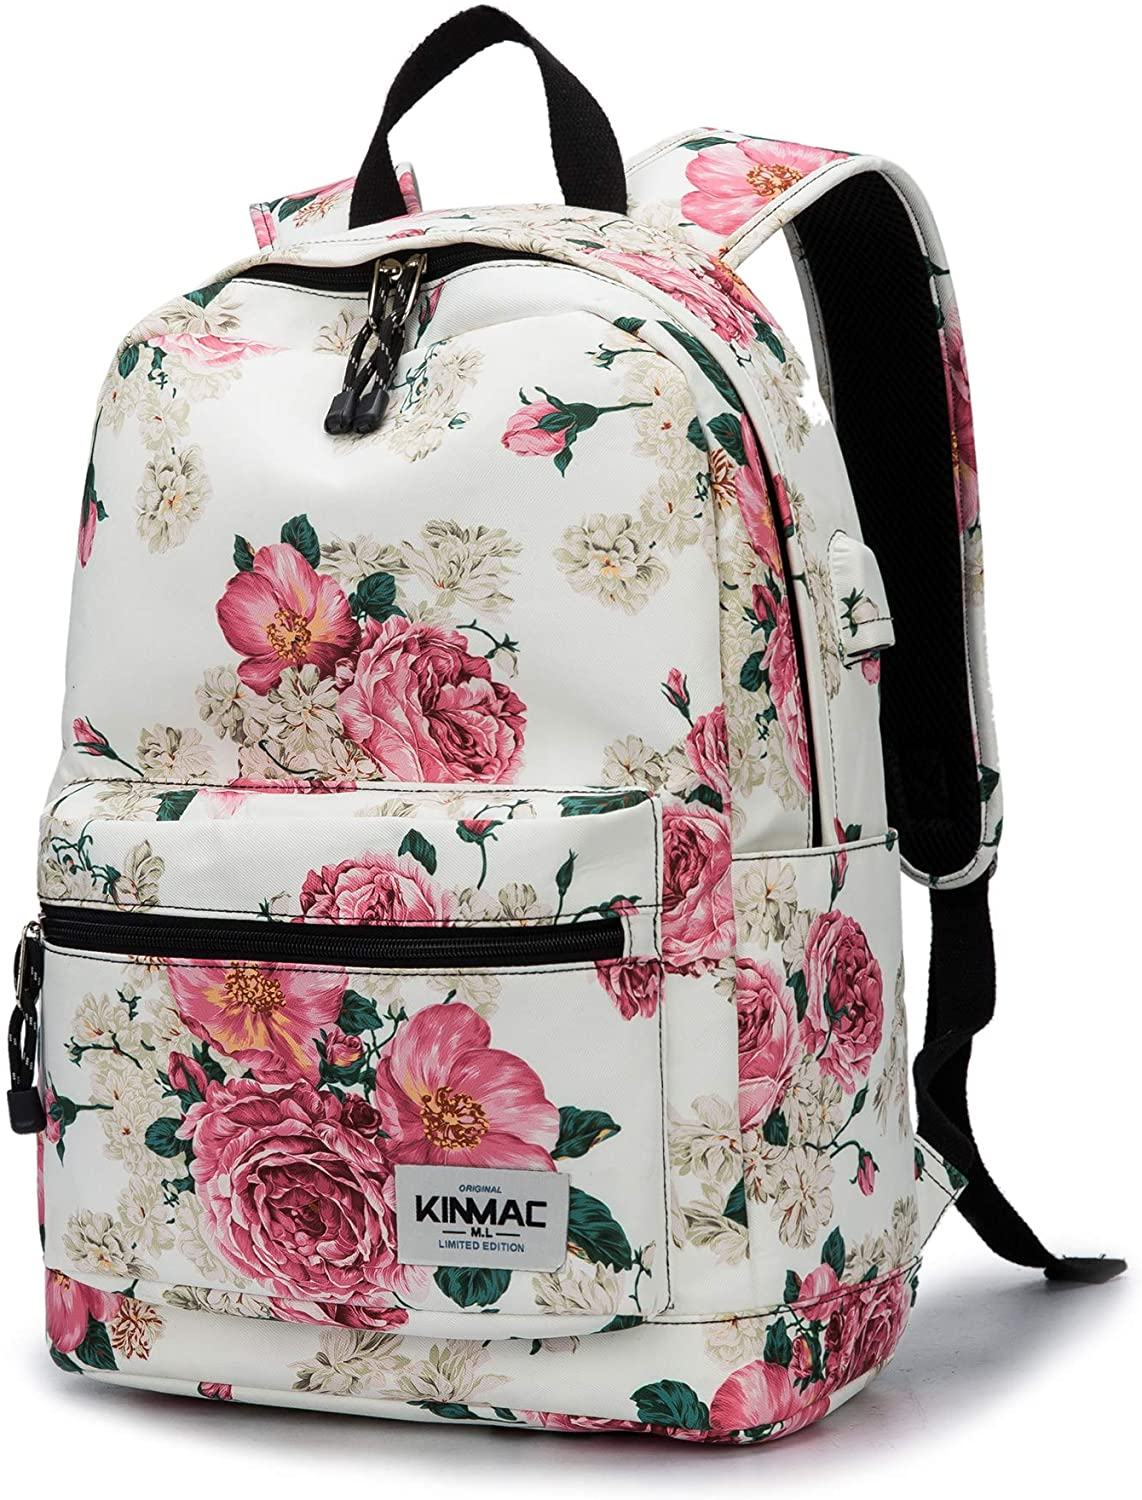 Kinmac Peony Pattern 15 inch Waterproof Laptop Travel Outdoor Backpack With USB Charging Port For 13 inch 14 inch and 15.6 inch Laptop